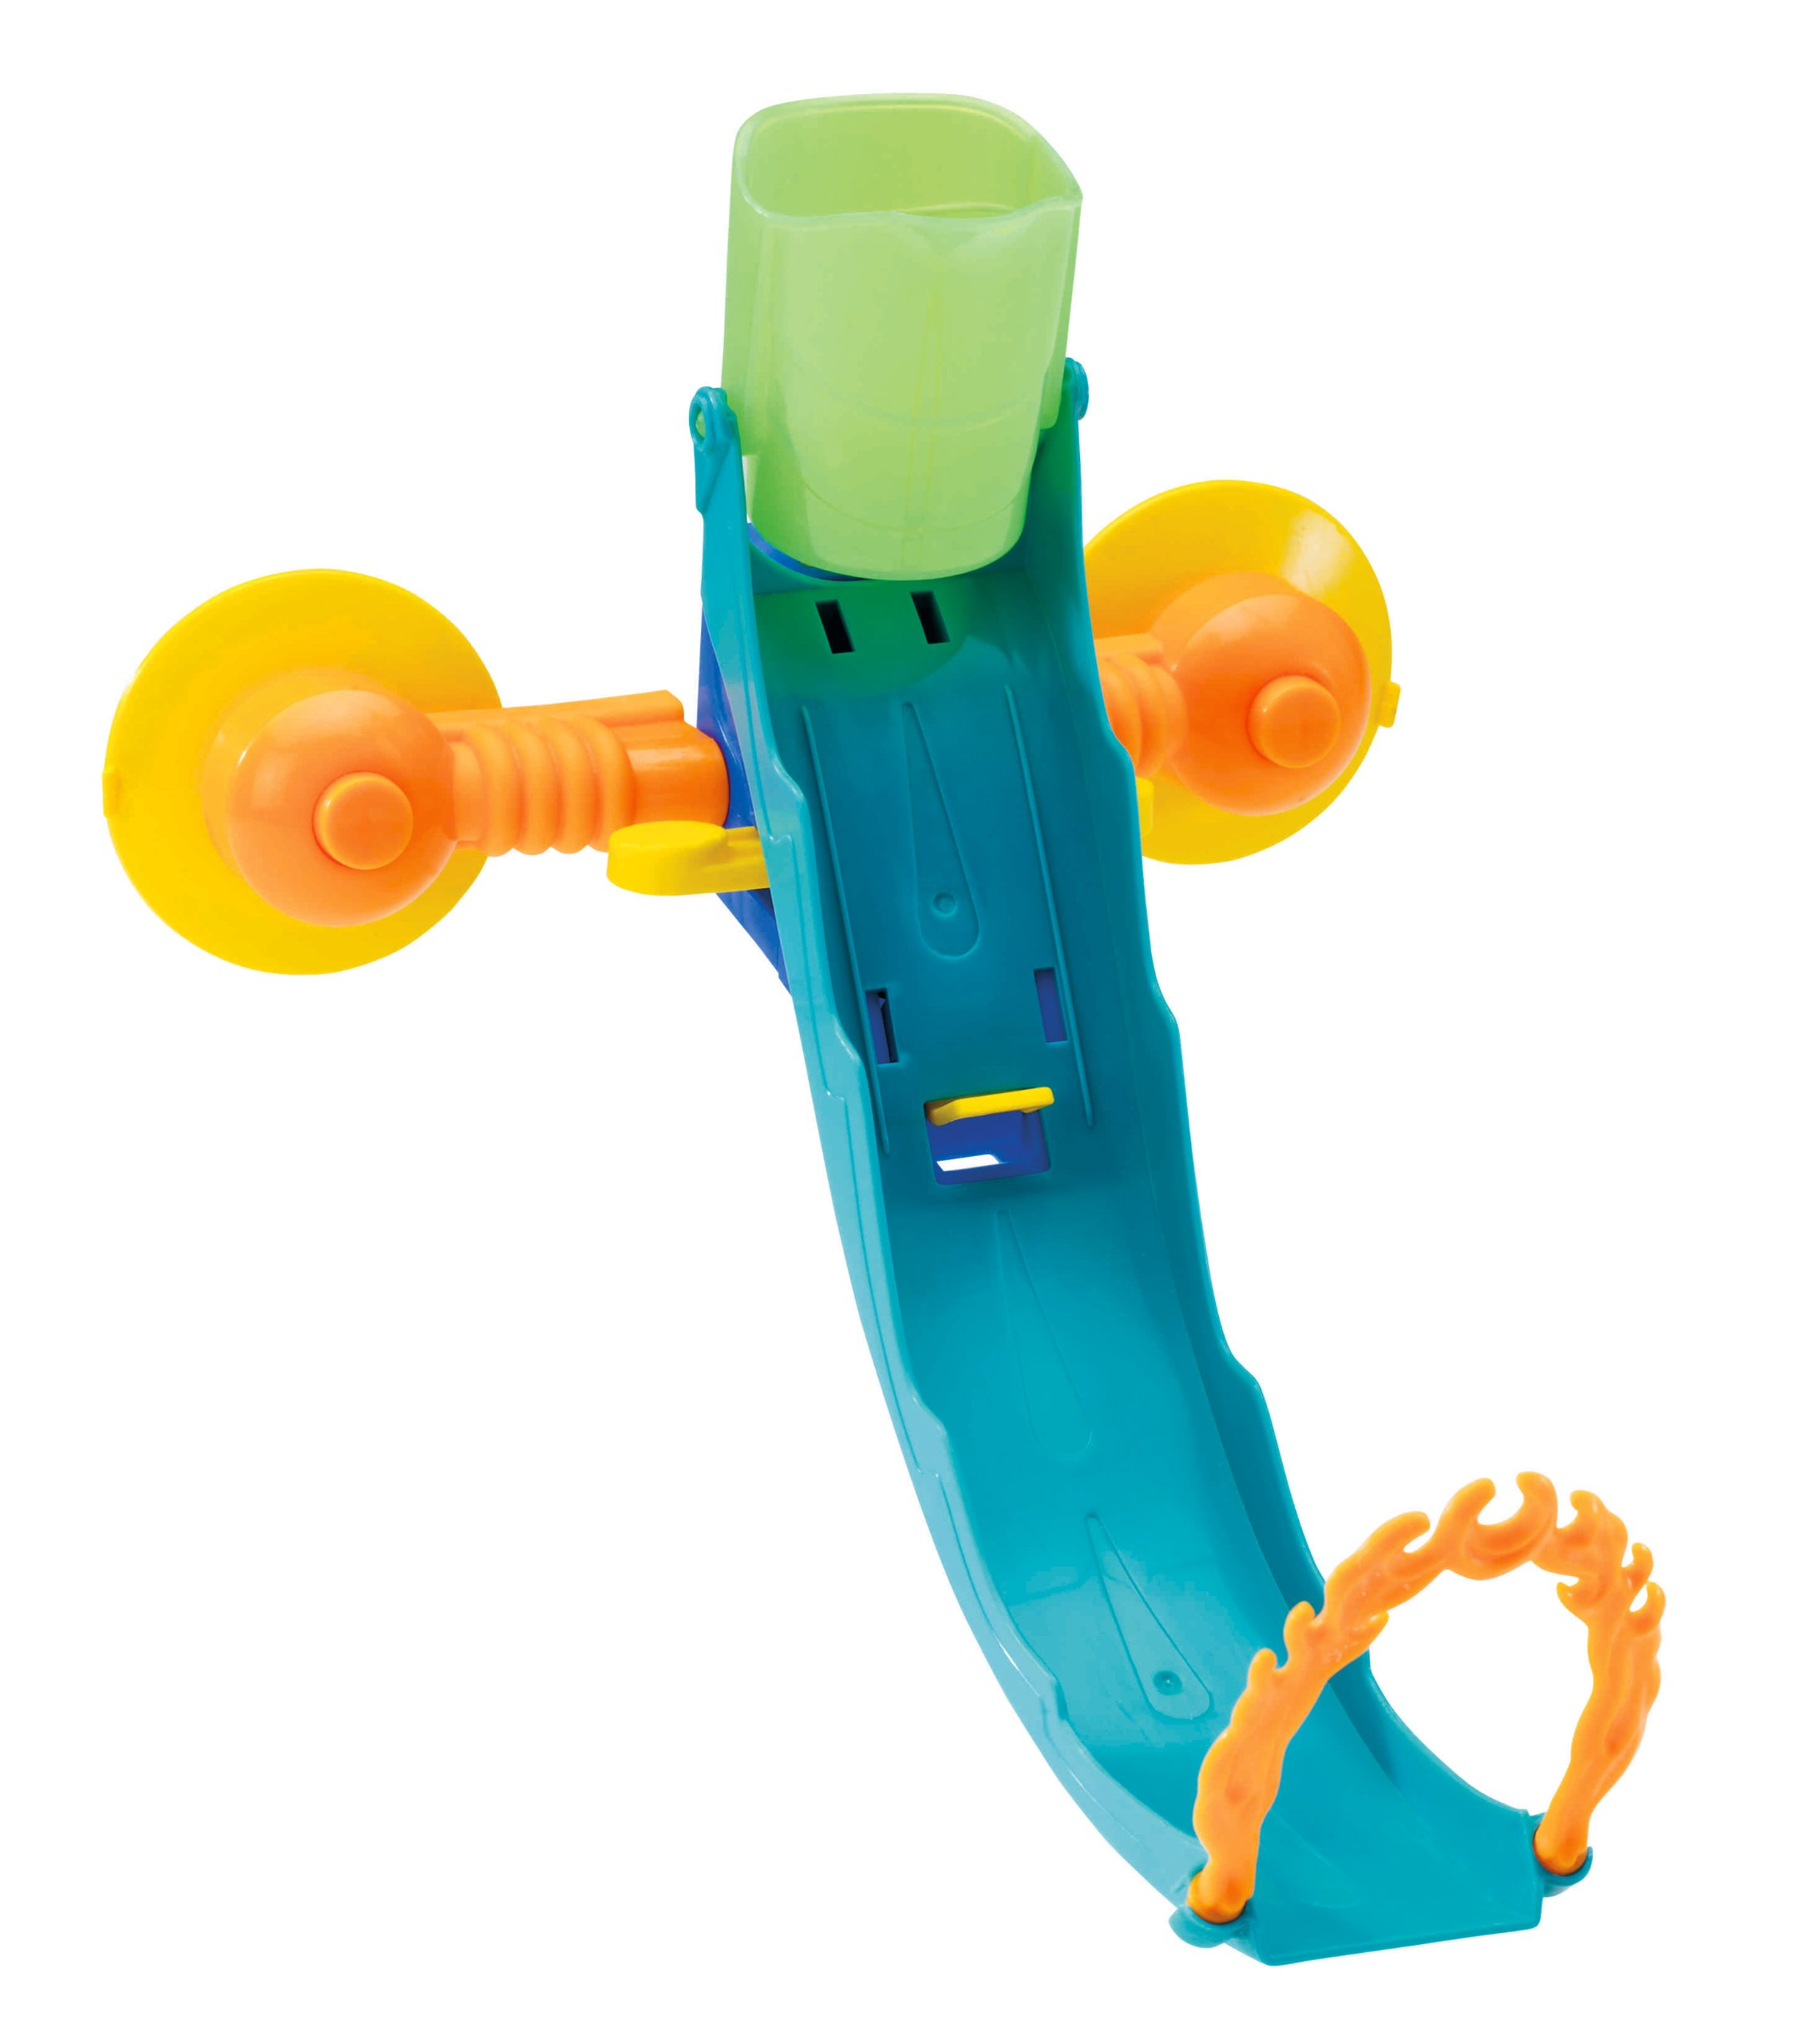 Hot Wheels Fun In The Tub Playset